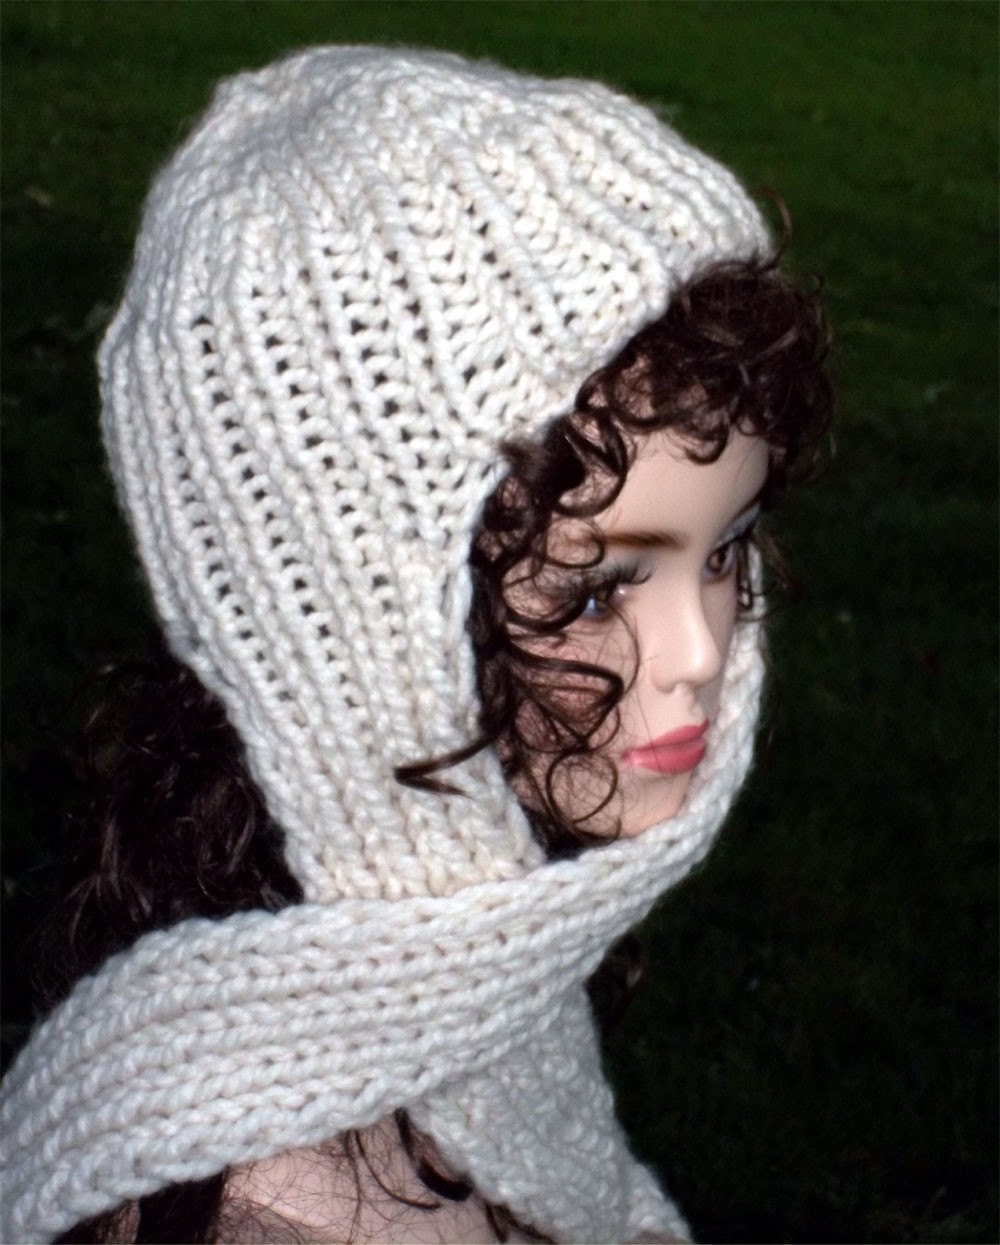 Knitting Pattern For Hat With Scarf Attached : Hand Knit Hat With Attached Scarf Women